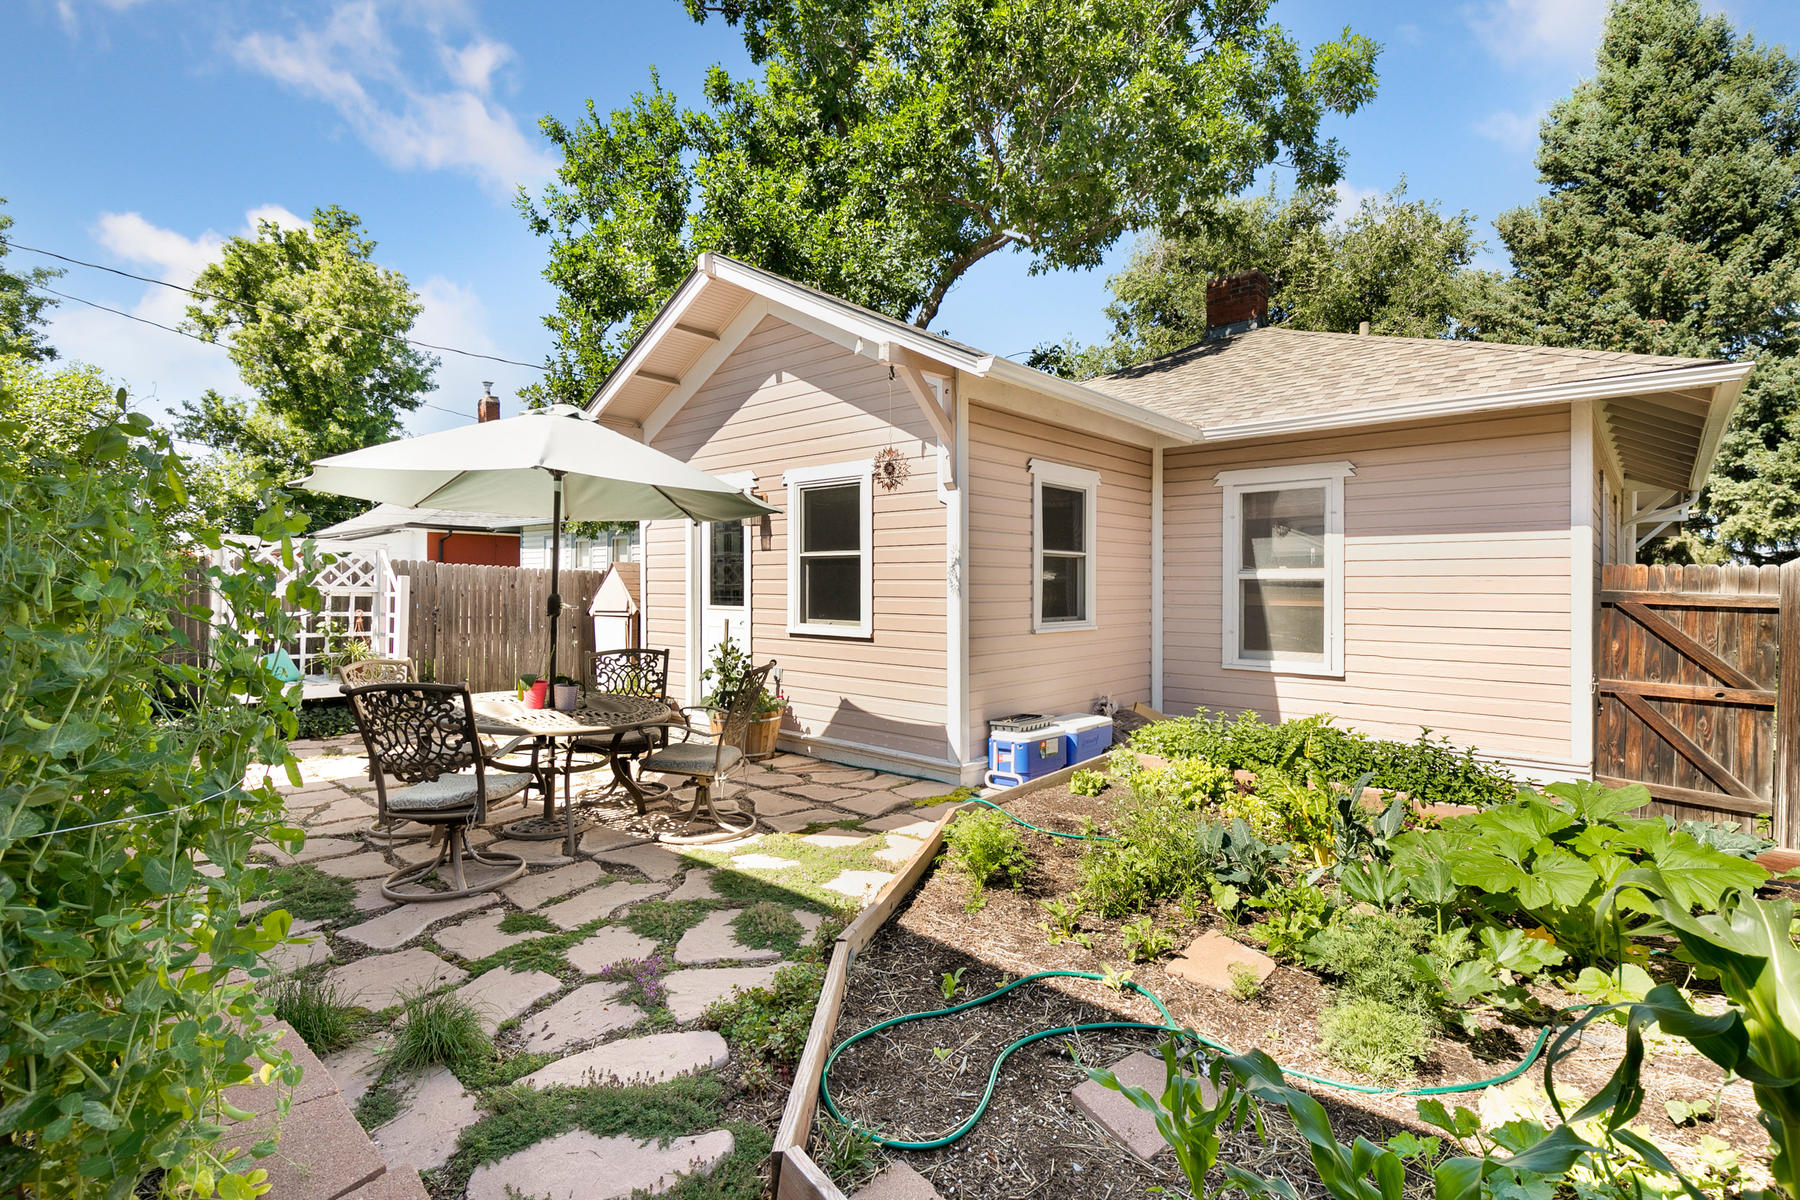 3230 S Lincoln St Englewood CO-032-034-31-MLS_Size.jpg